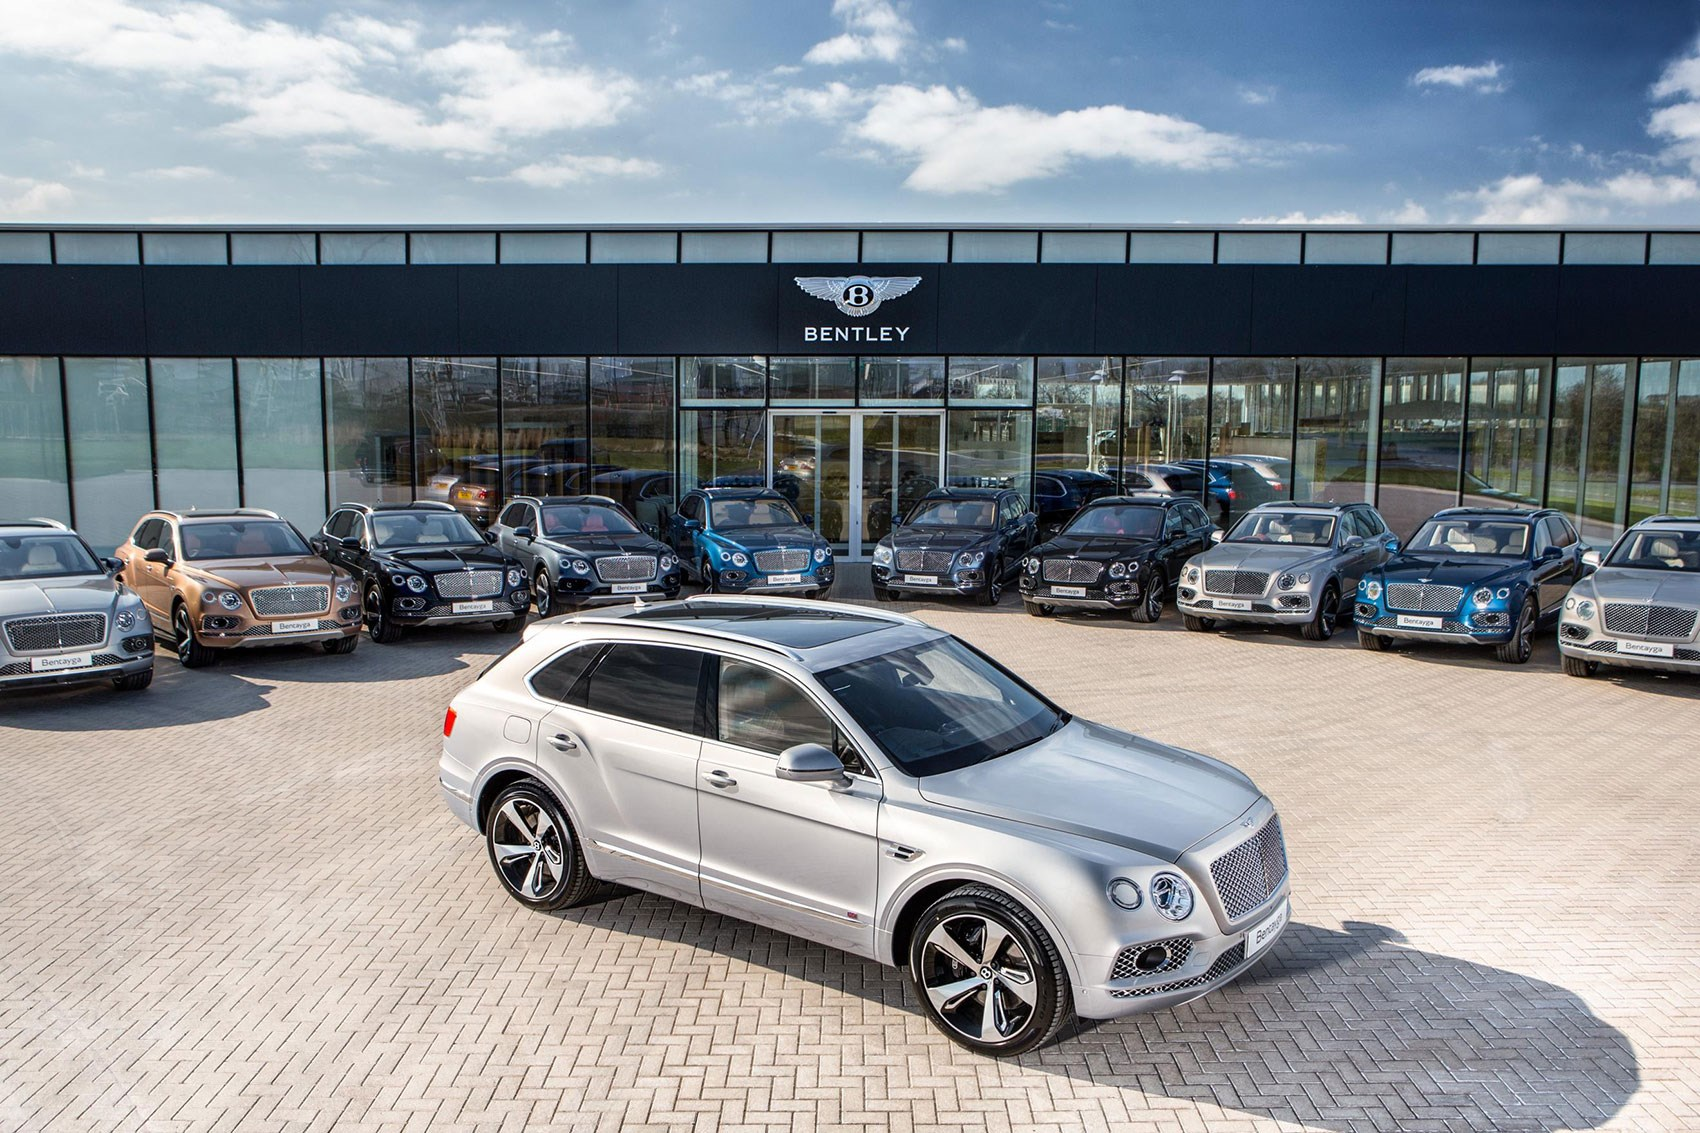 Bentley Bentayga Is Released To The Public By Car Magazine